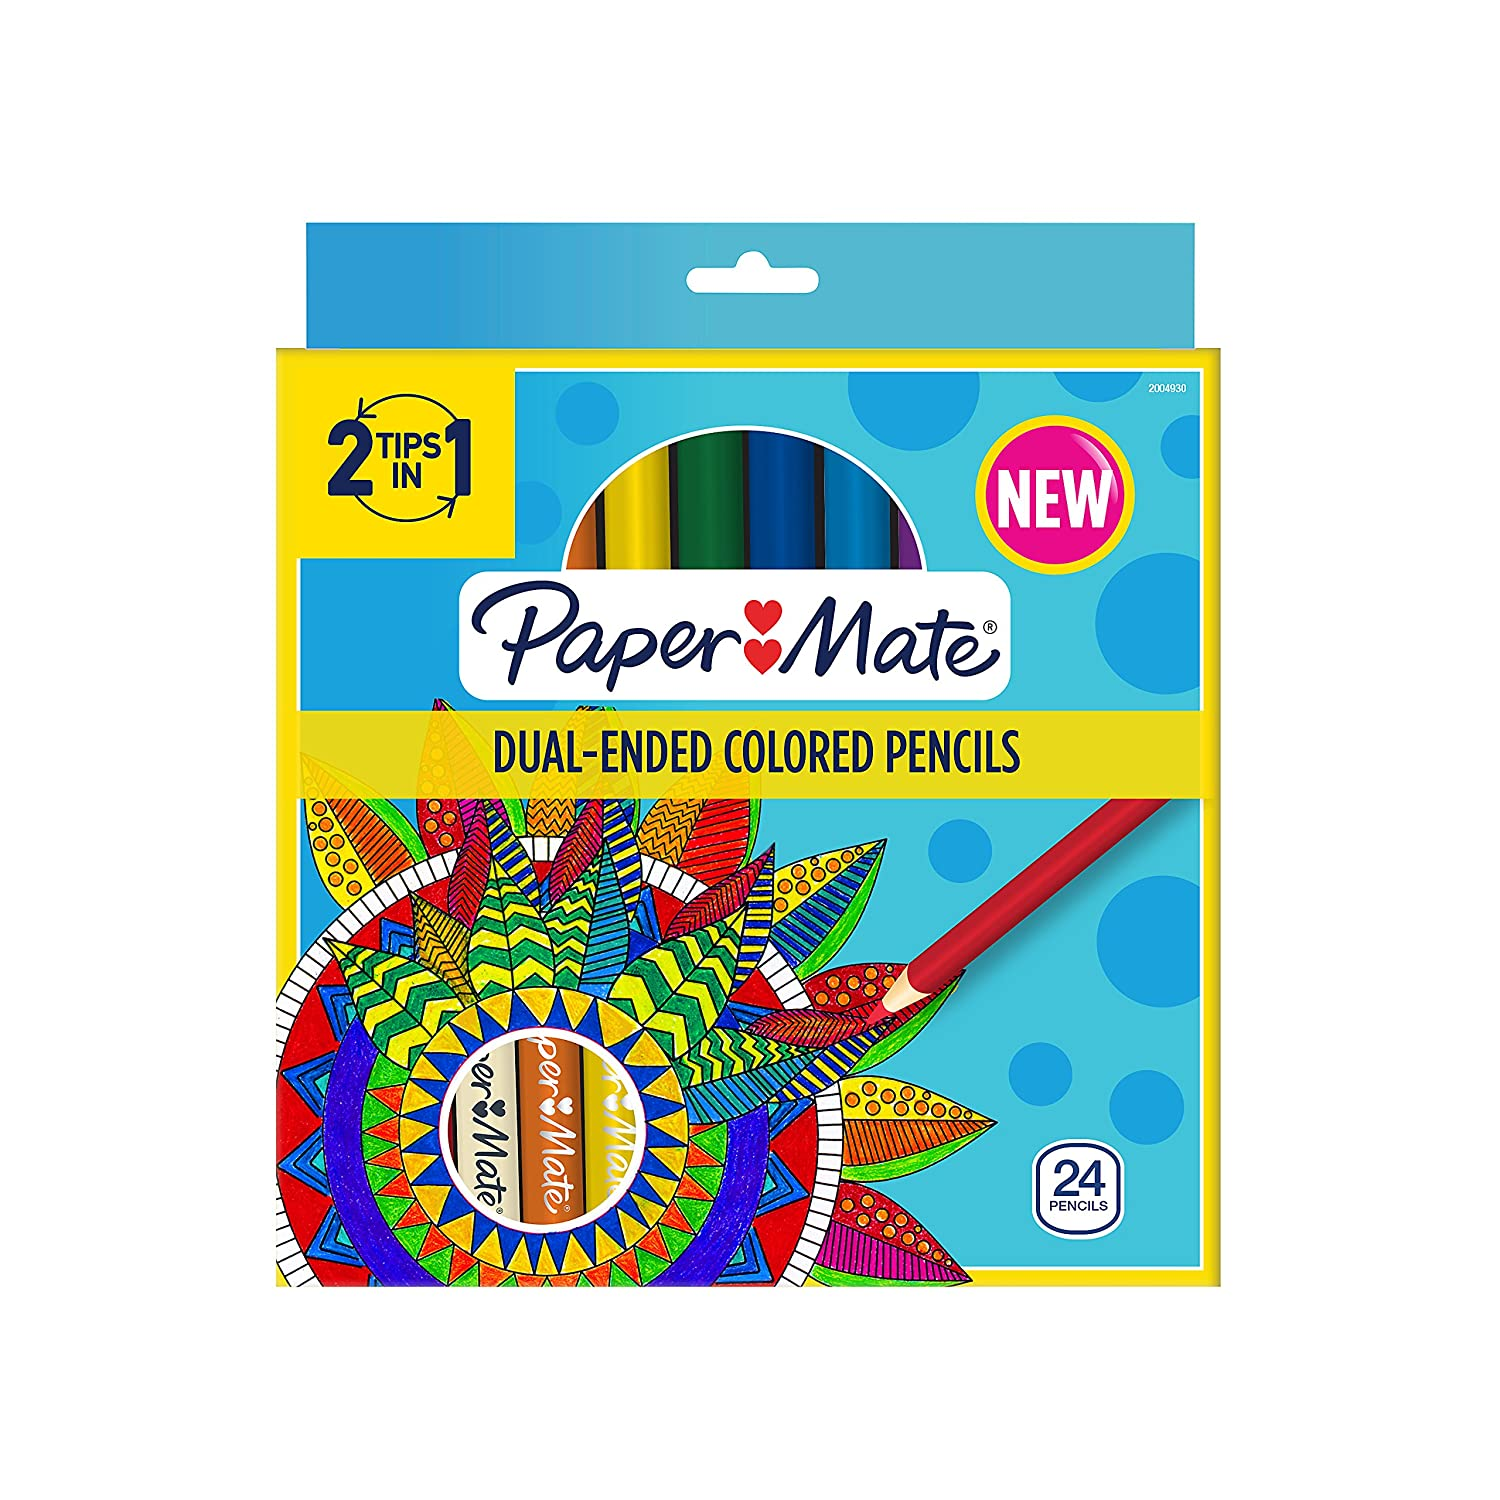 Paper Mate Dual Ended Colored Pencils, Assorted Colors, Pre Sharpened, 24 Count Newell Rubbermaid Office 2004930